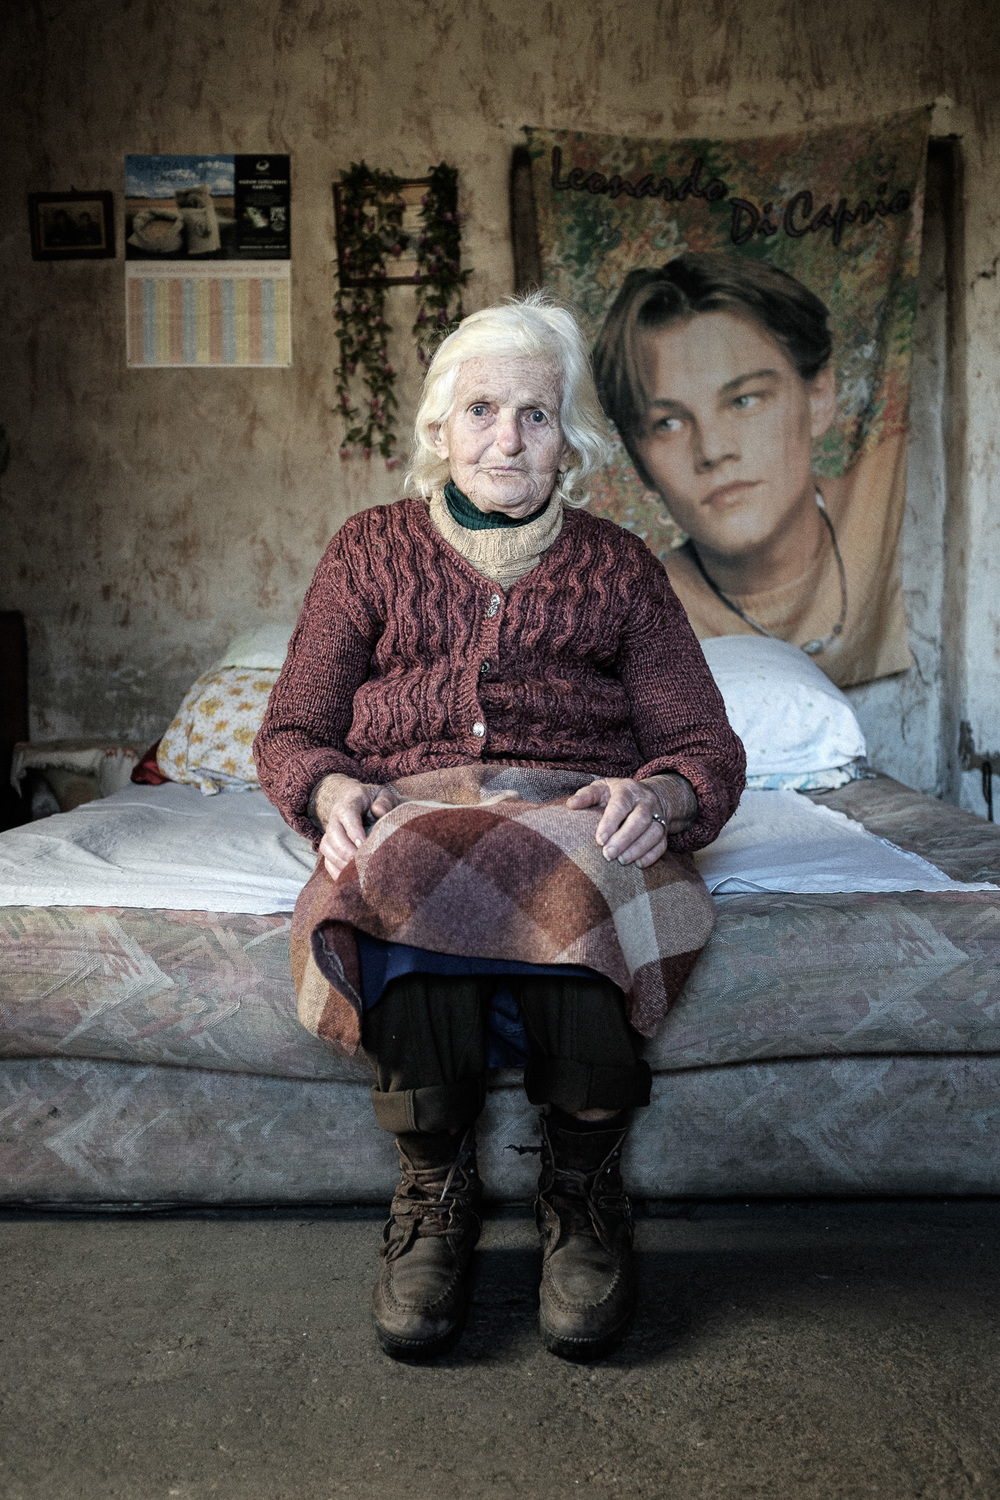 Pensioner waiting for nurse in a village in Ormánság region (Hungary), which is one of the poorest region of the EU.